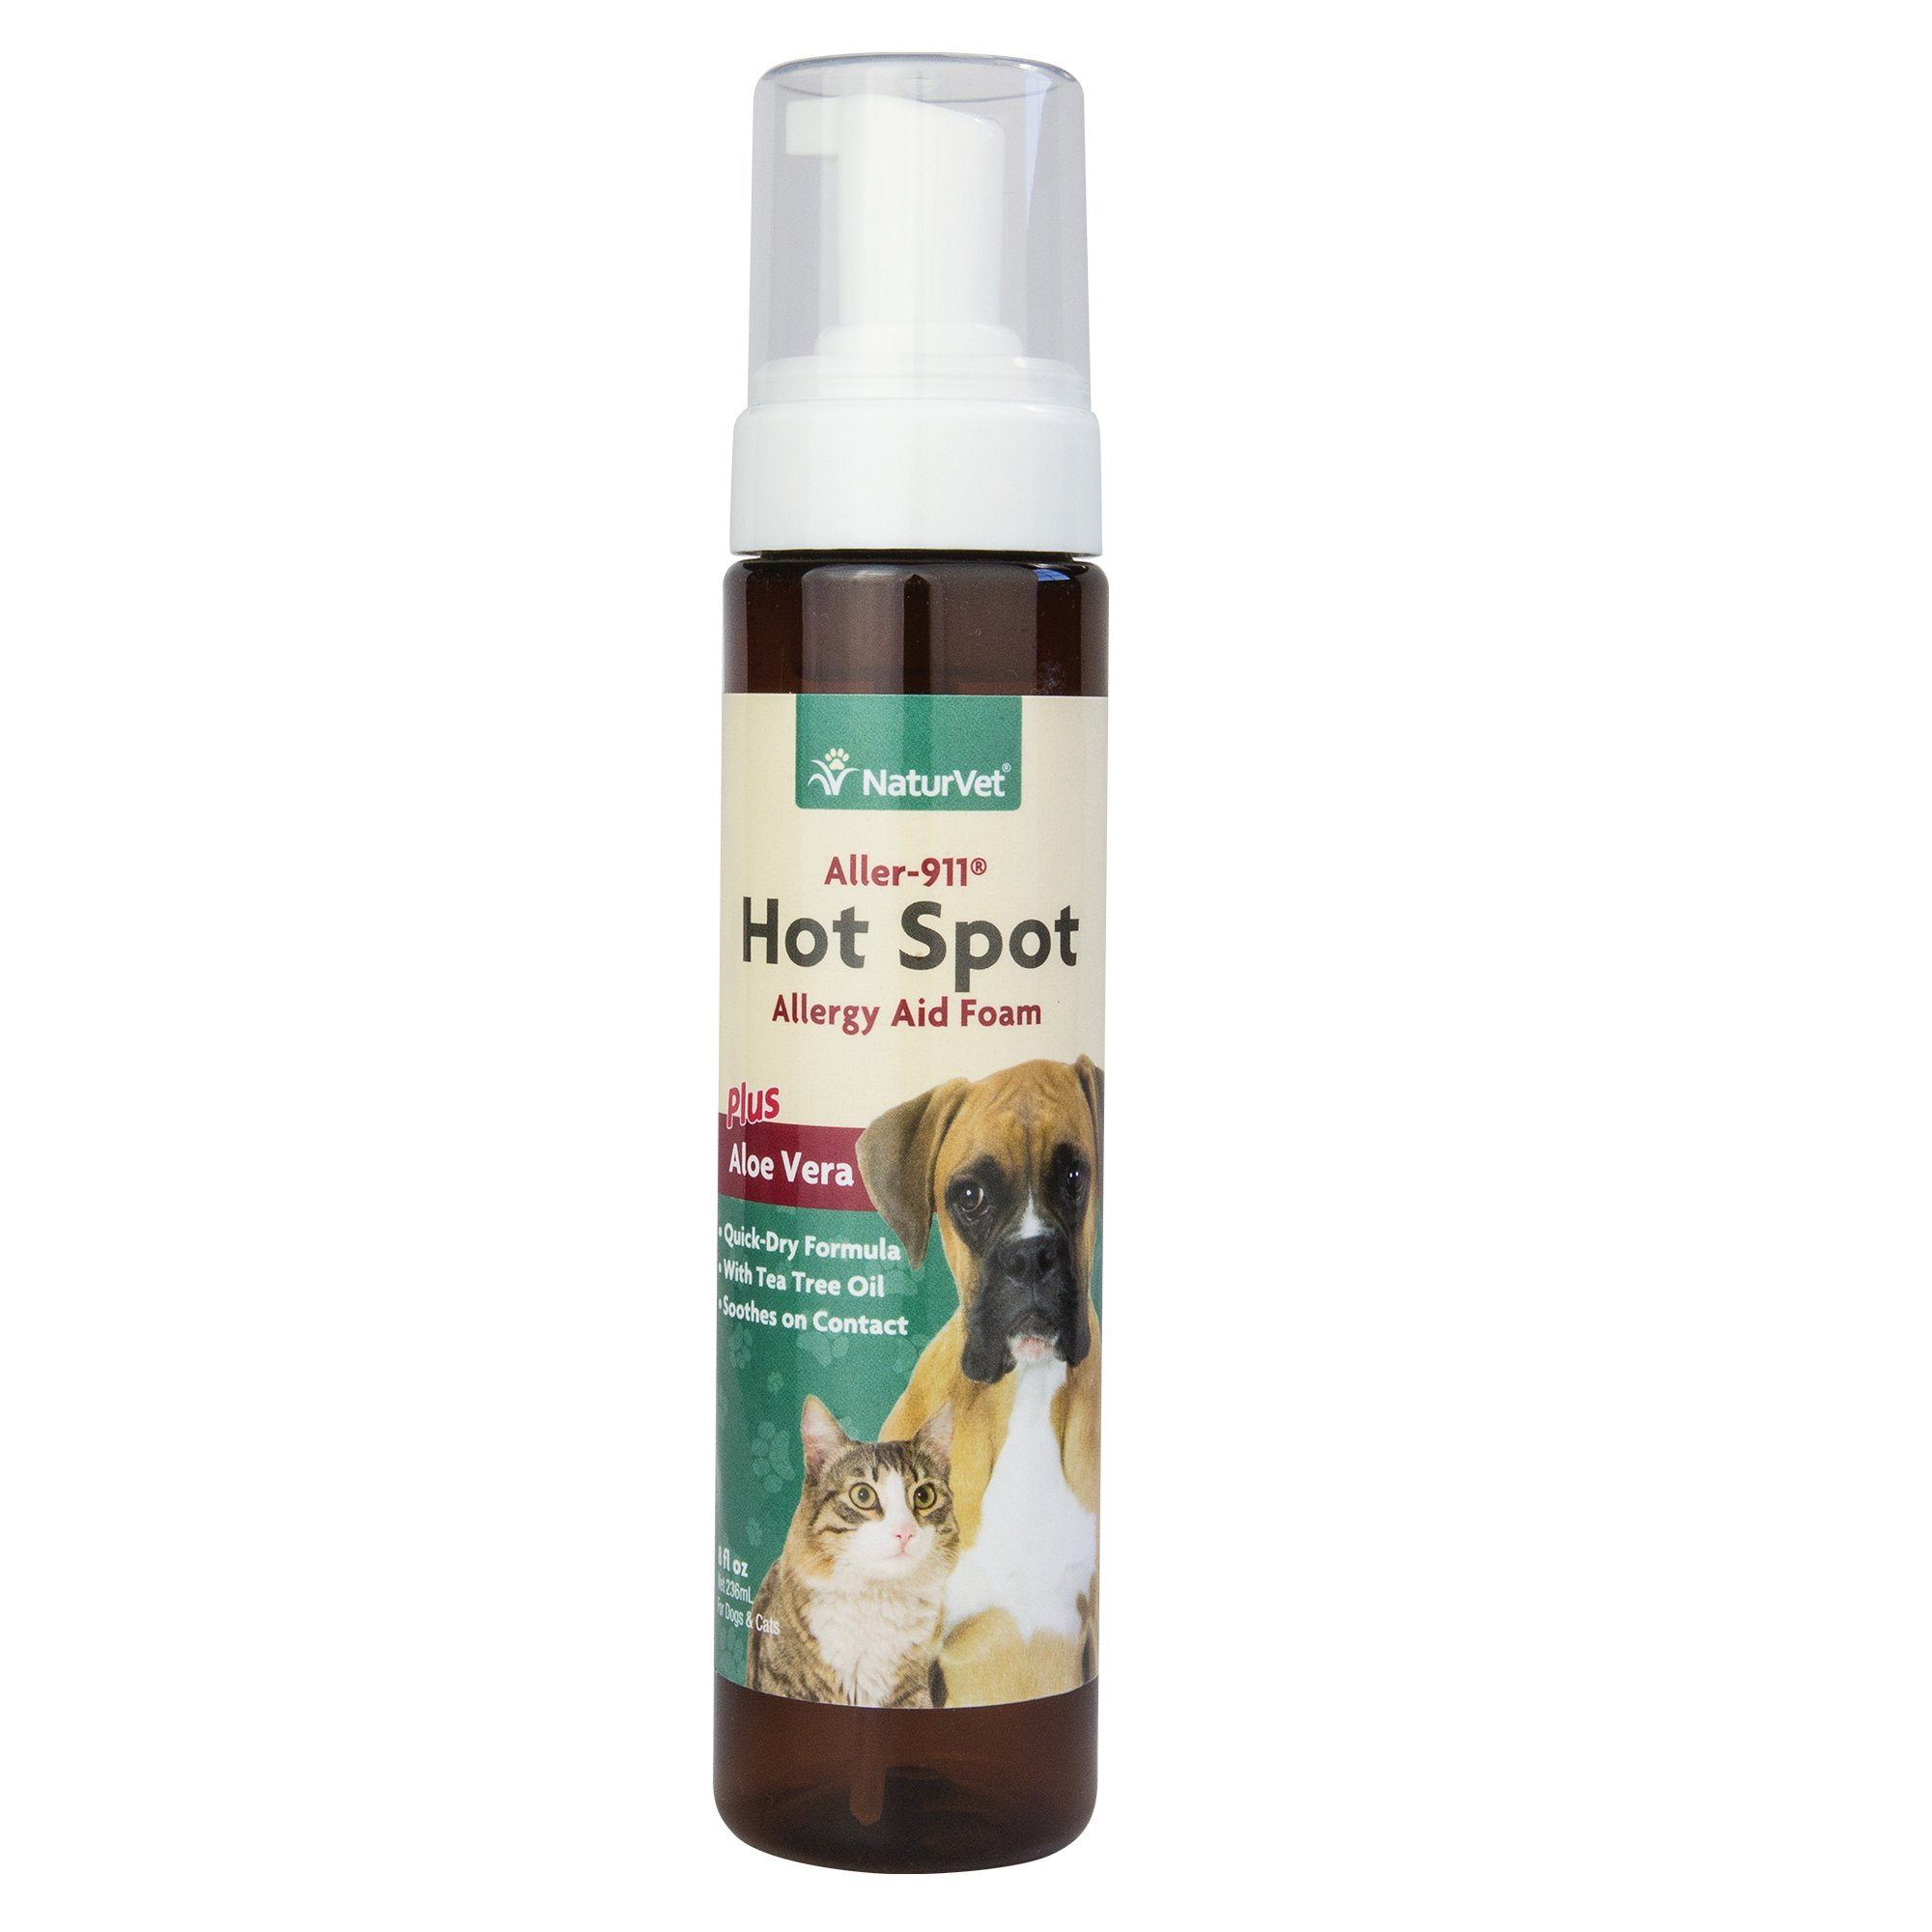 NaturVet Aller-911 Hot Spot Allergy Aid Foam